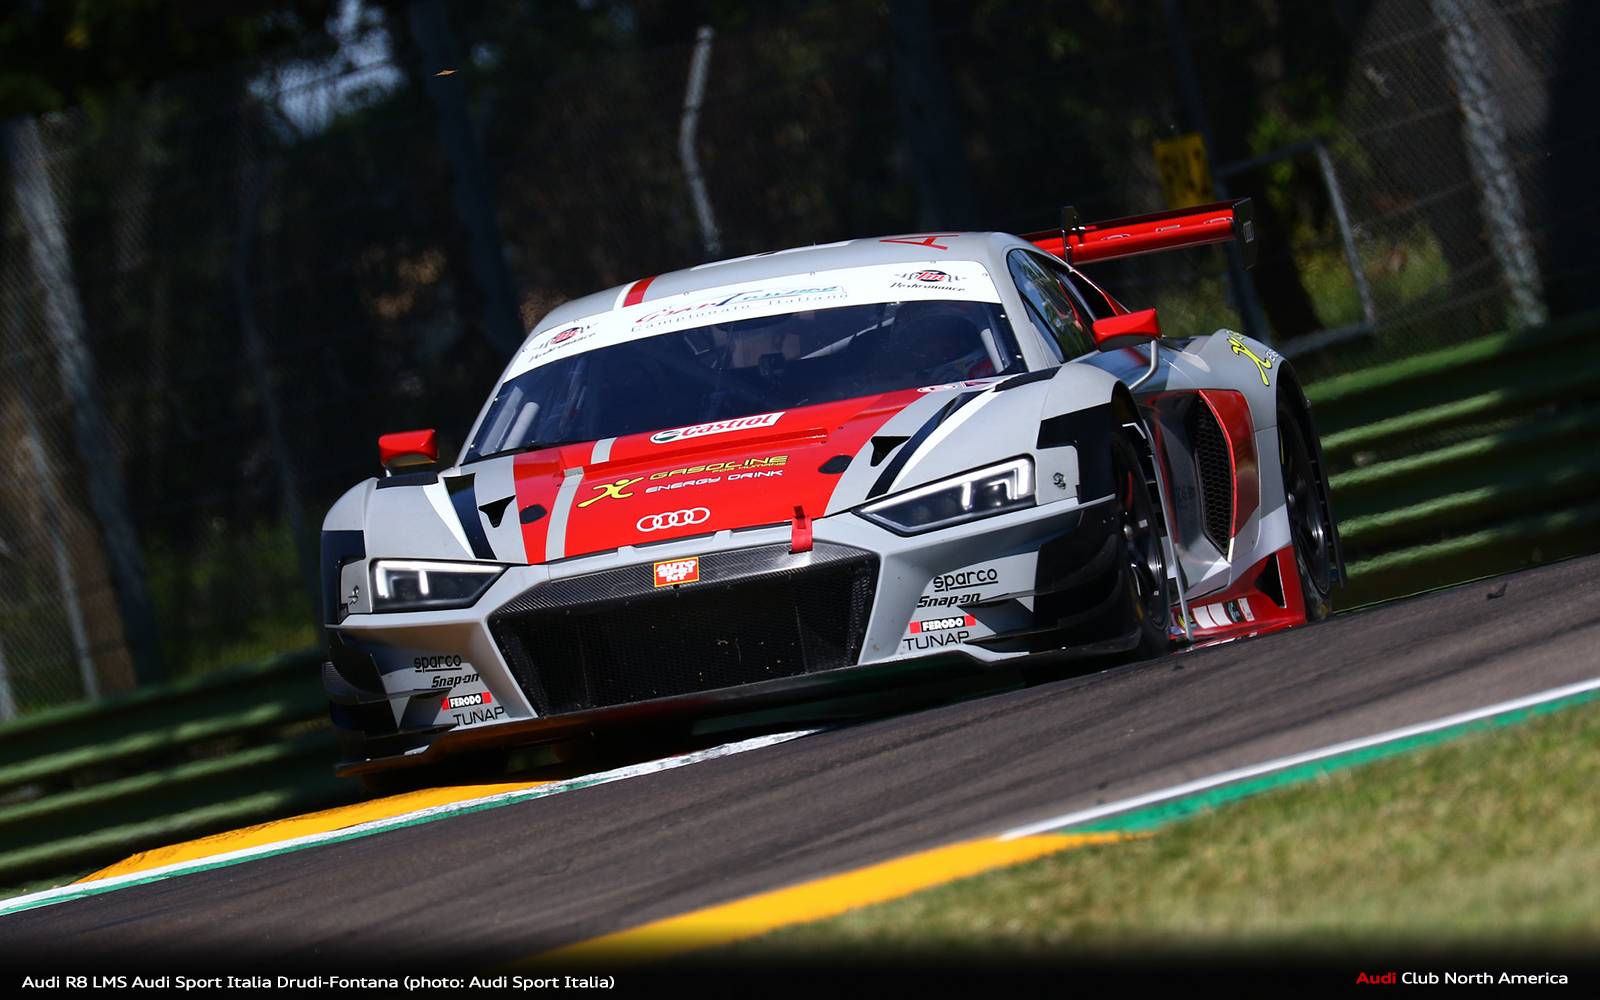 Drive-Through, Bad Breaks Ultimately Spoil Imola Italian Gran Turismo Weekend for Audi Sport Italia Young Guns